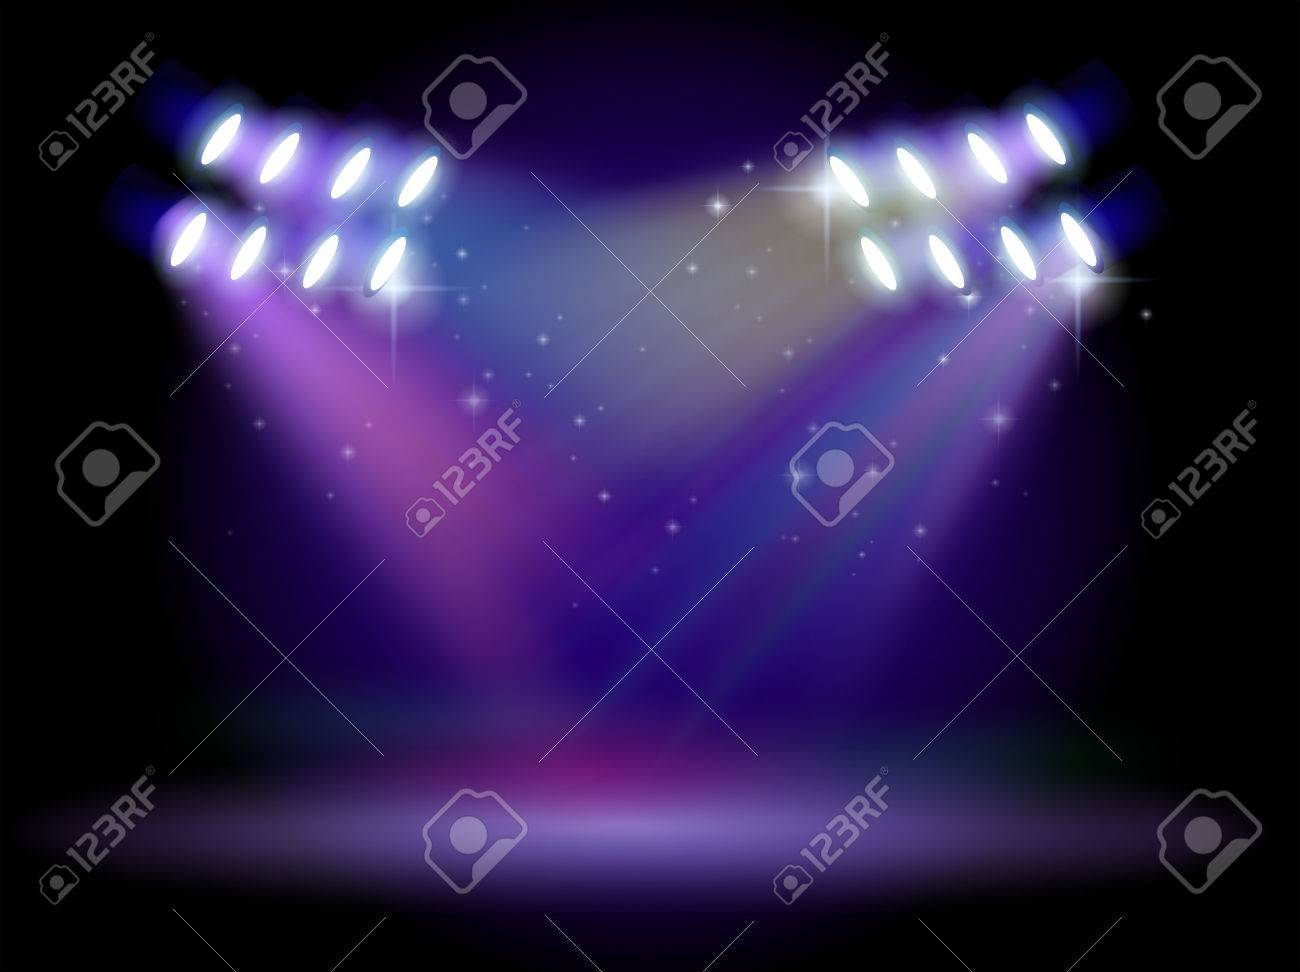 Illustration Of An Empty Stage With Lights Stock Vector